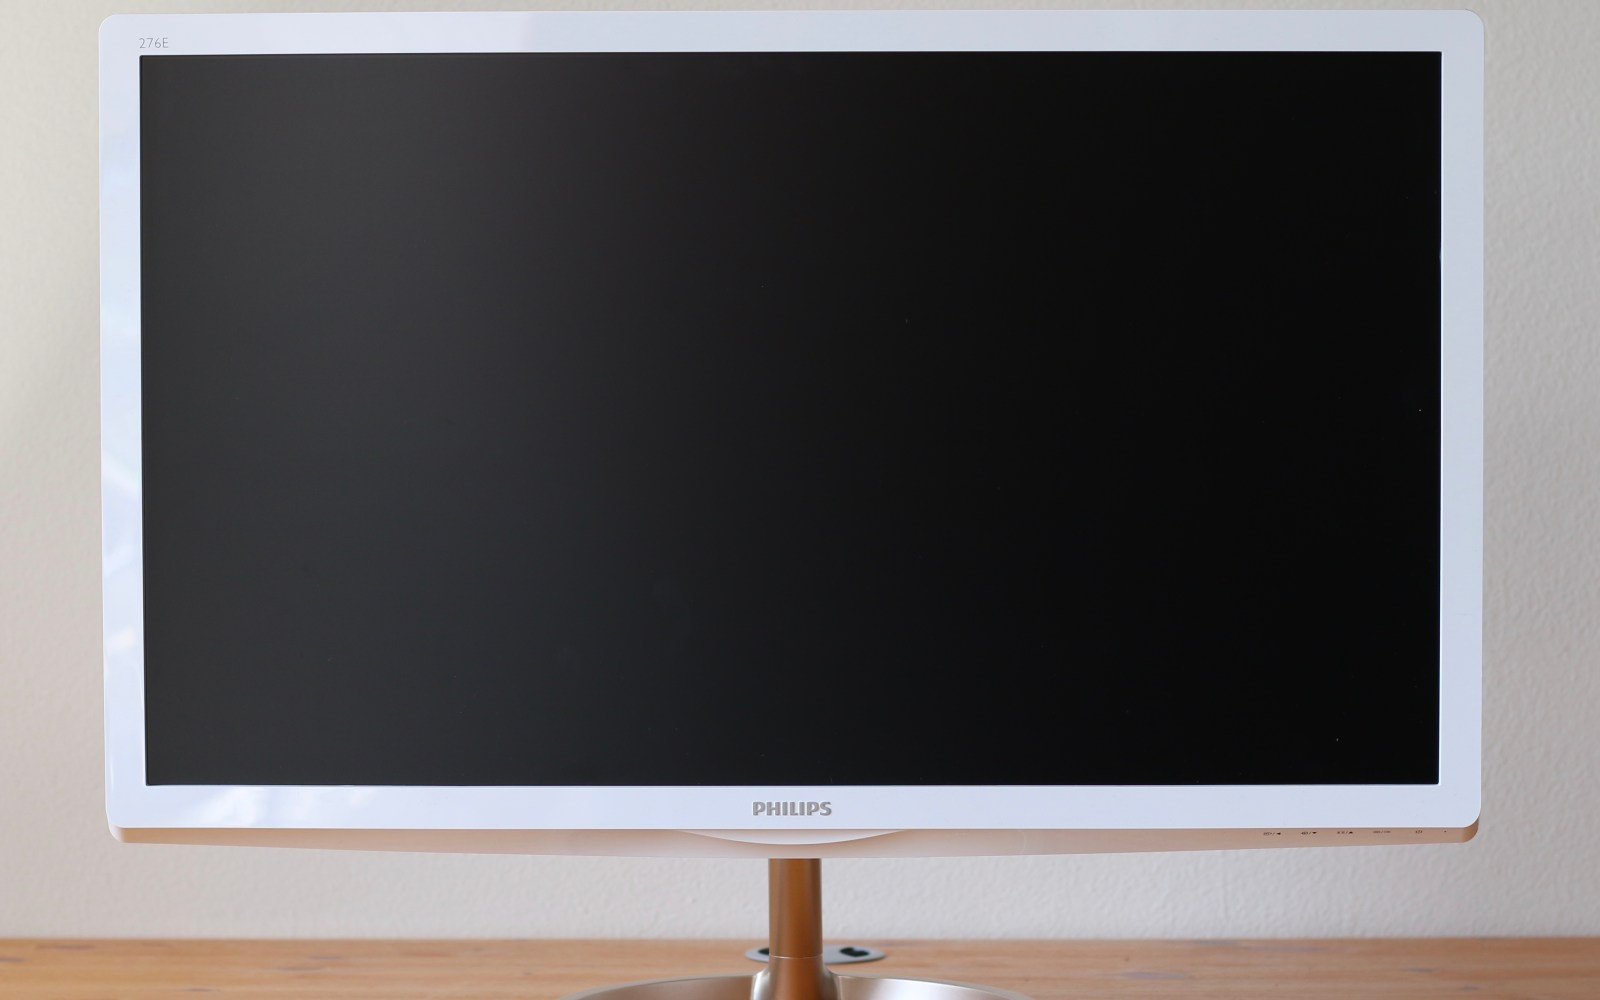 Review: Philips 27-inch Quantum Dot monitor promises greater color accuracy and clarity